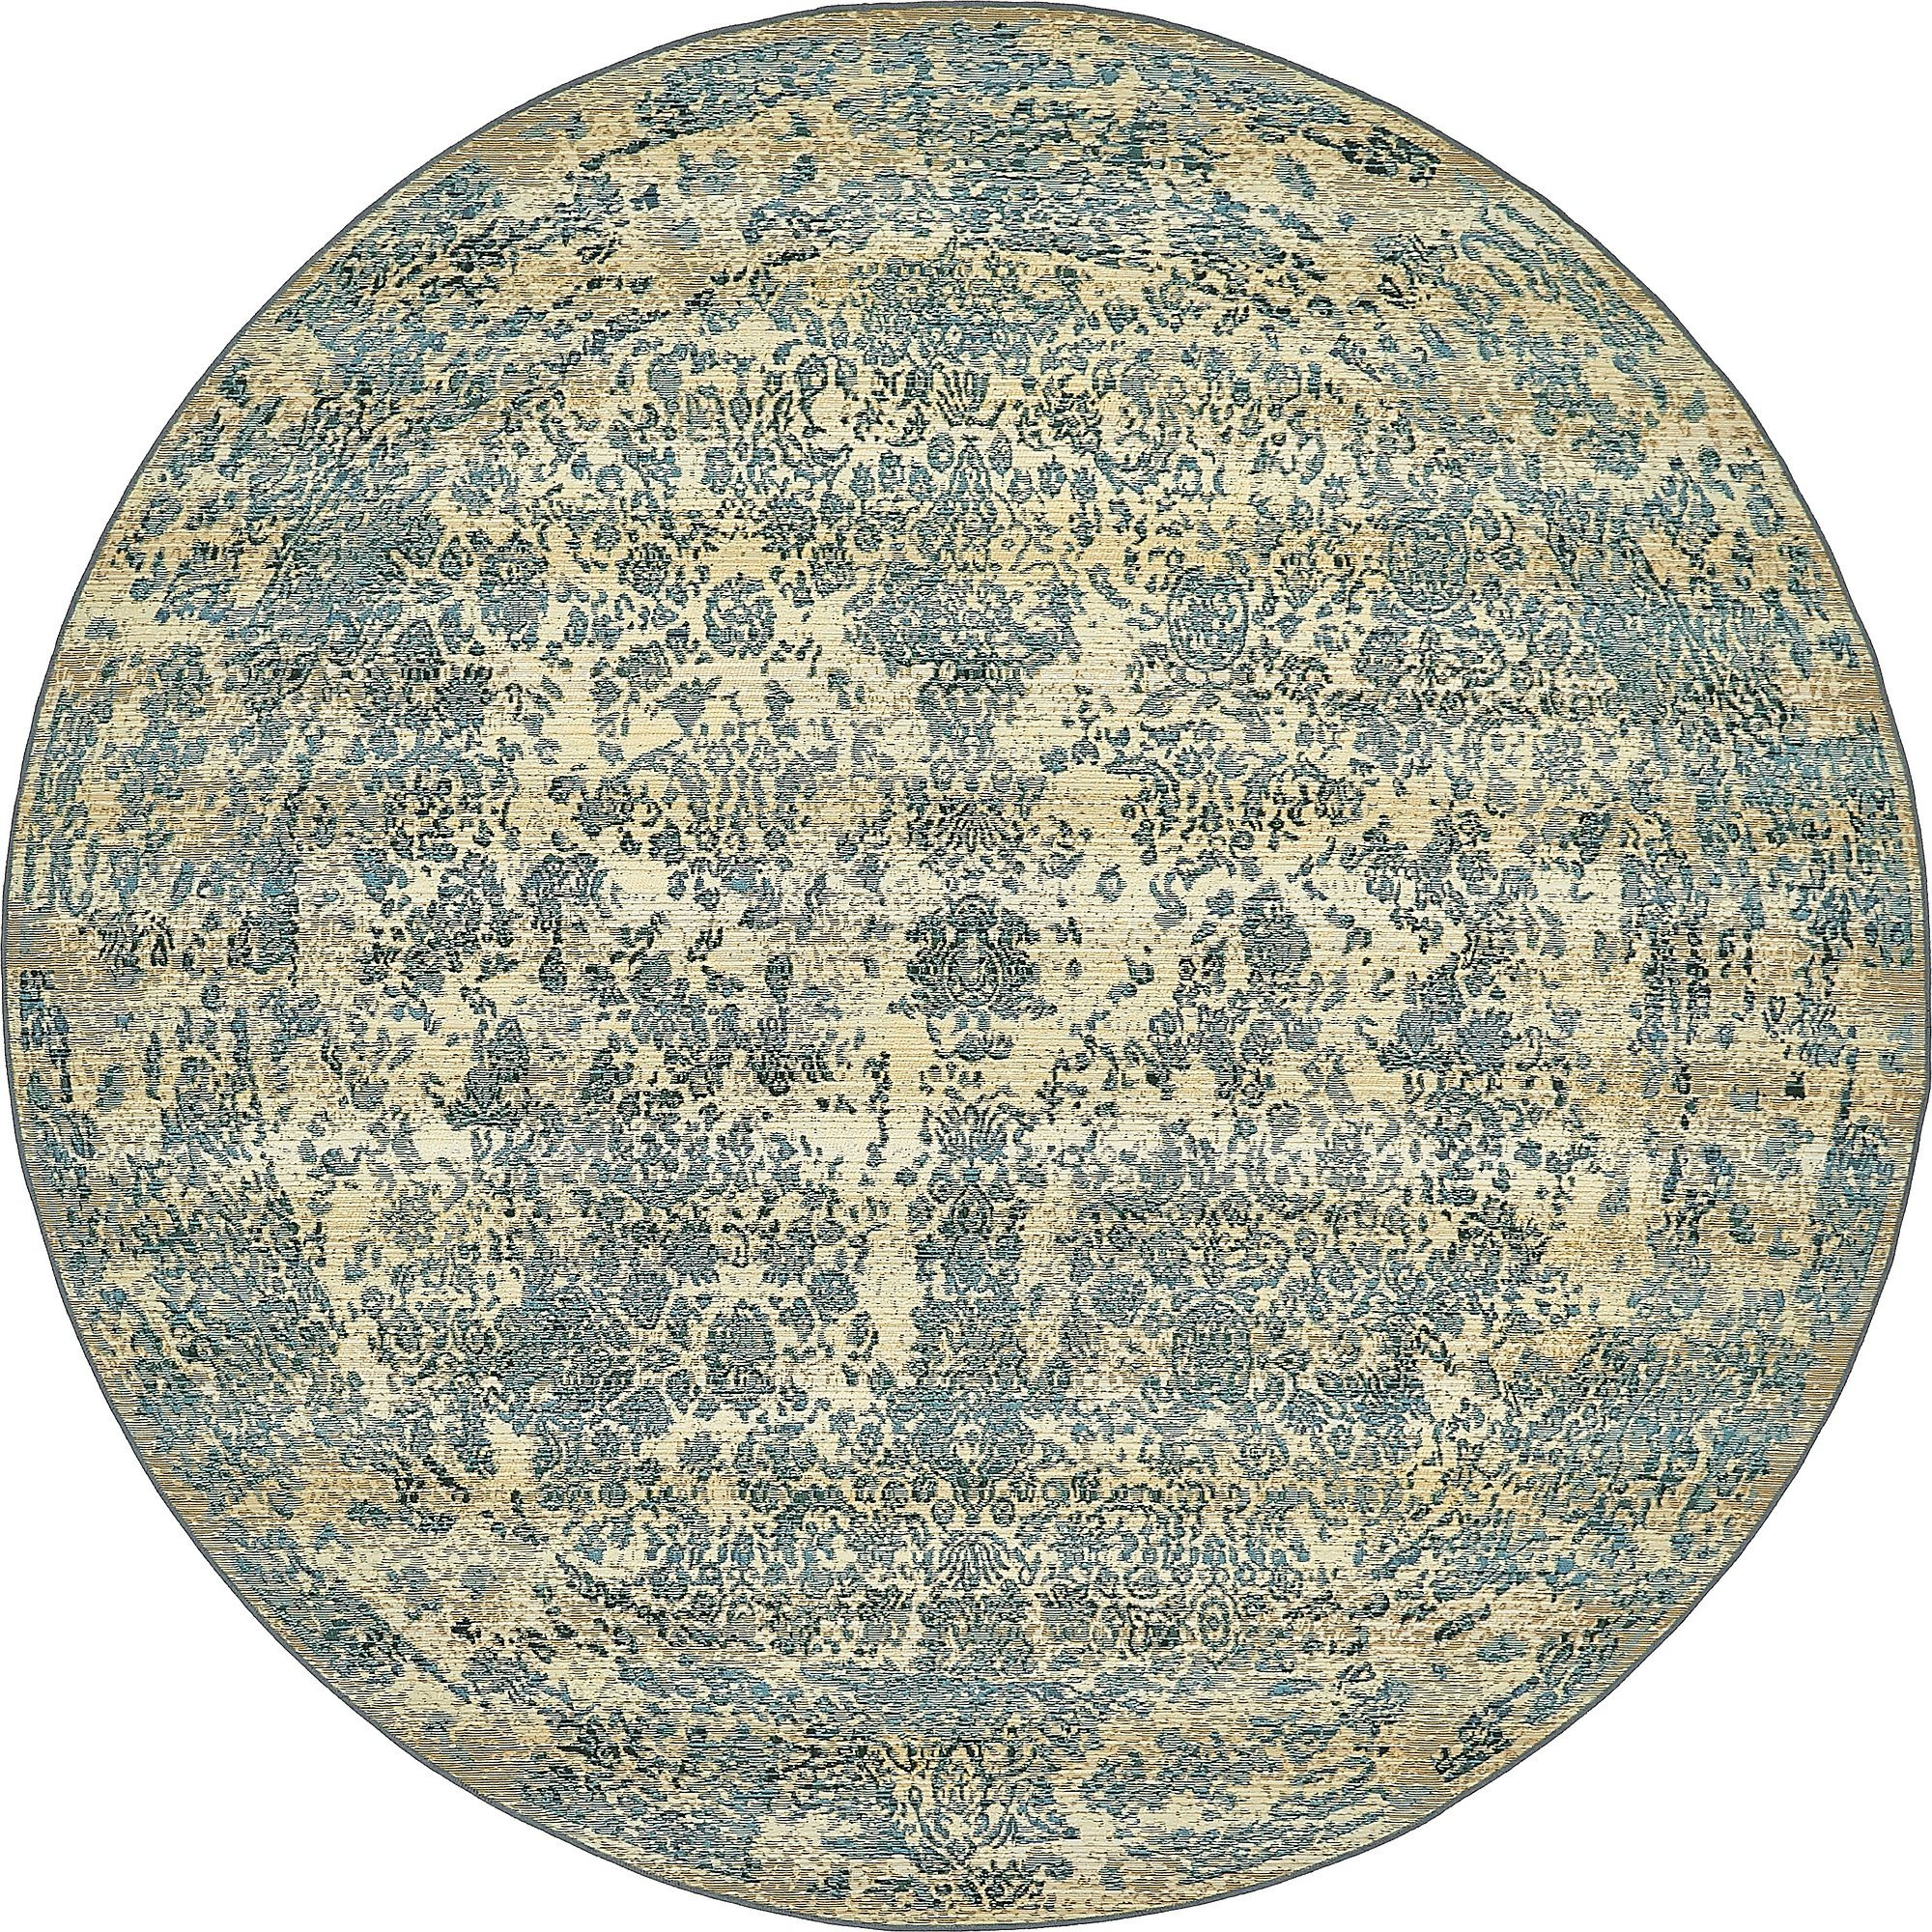 Unique Loom Eden Outdoor Collection Beige 8 ft Round Area Rug (8' x 8') by Unique Loom